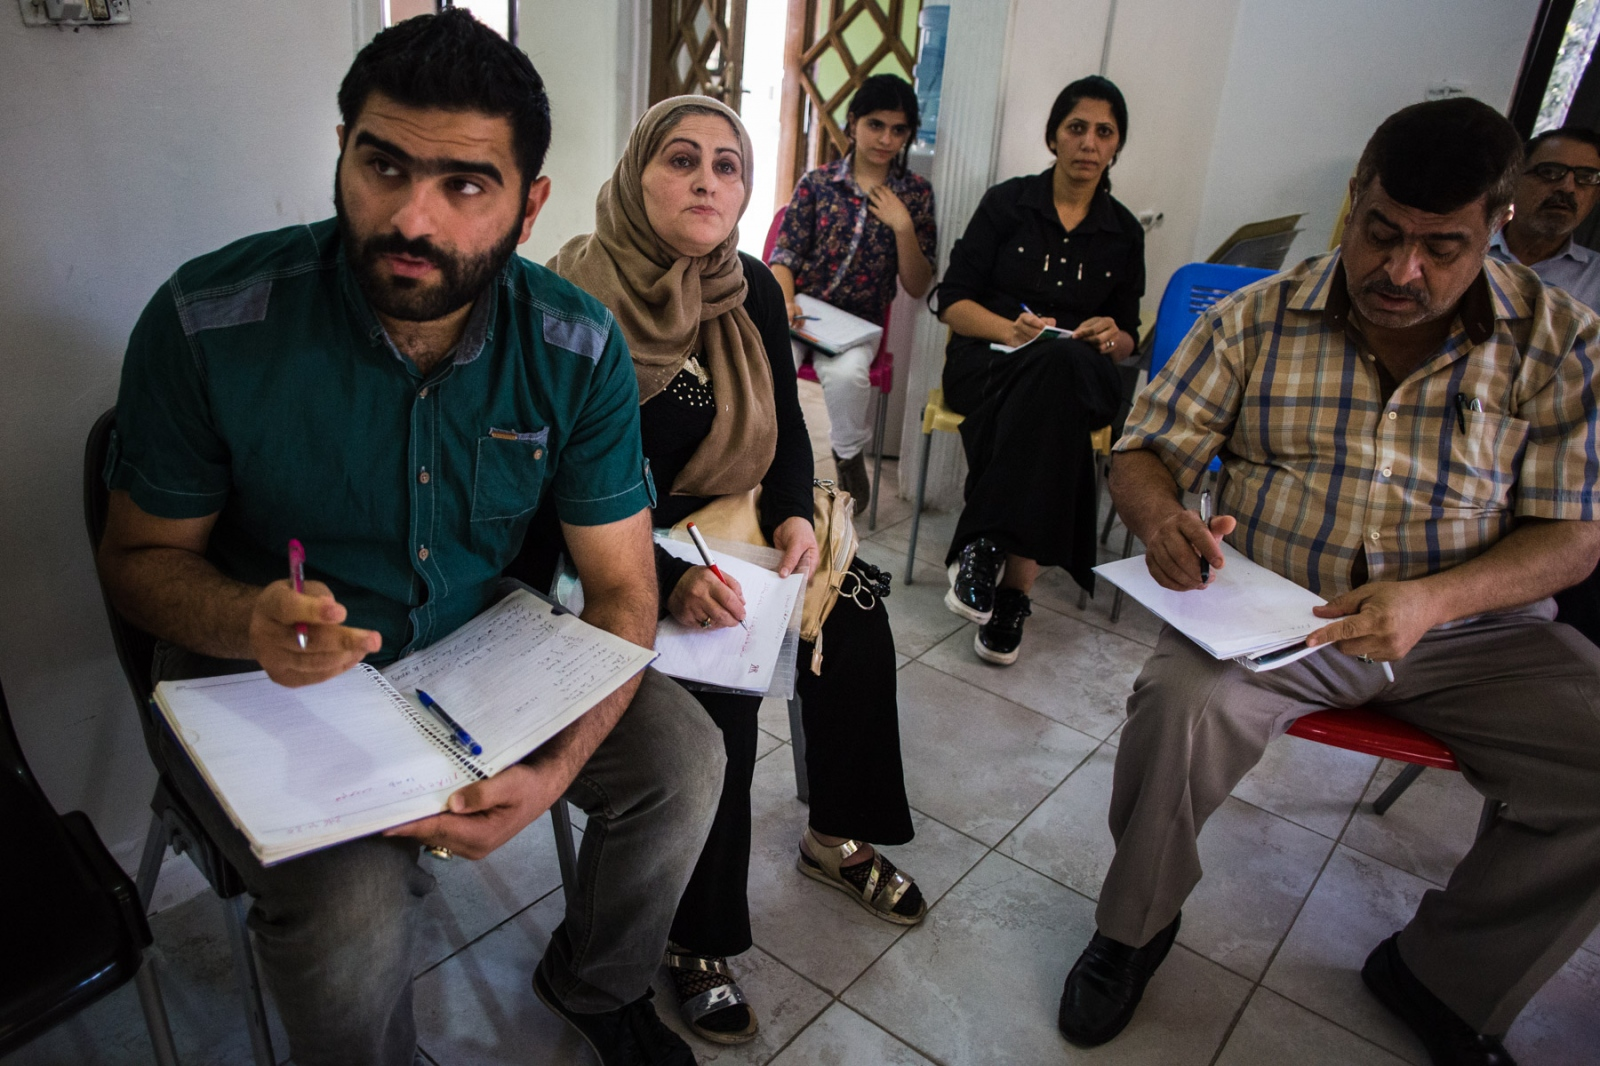 Iraqi refugees attend English classes at Collateral Repiar Project in Hashmi Shmali in East Amman. Many of them are waiting for resettlement to the US, Canada, Australia, and other western countries, and are trying to improve their English before arriving.